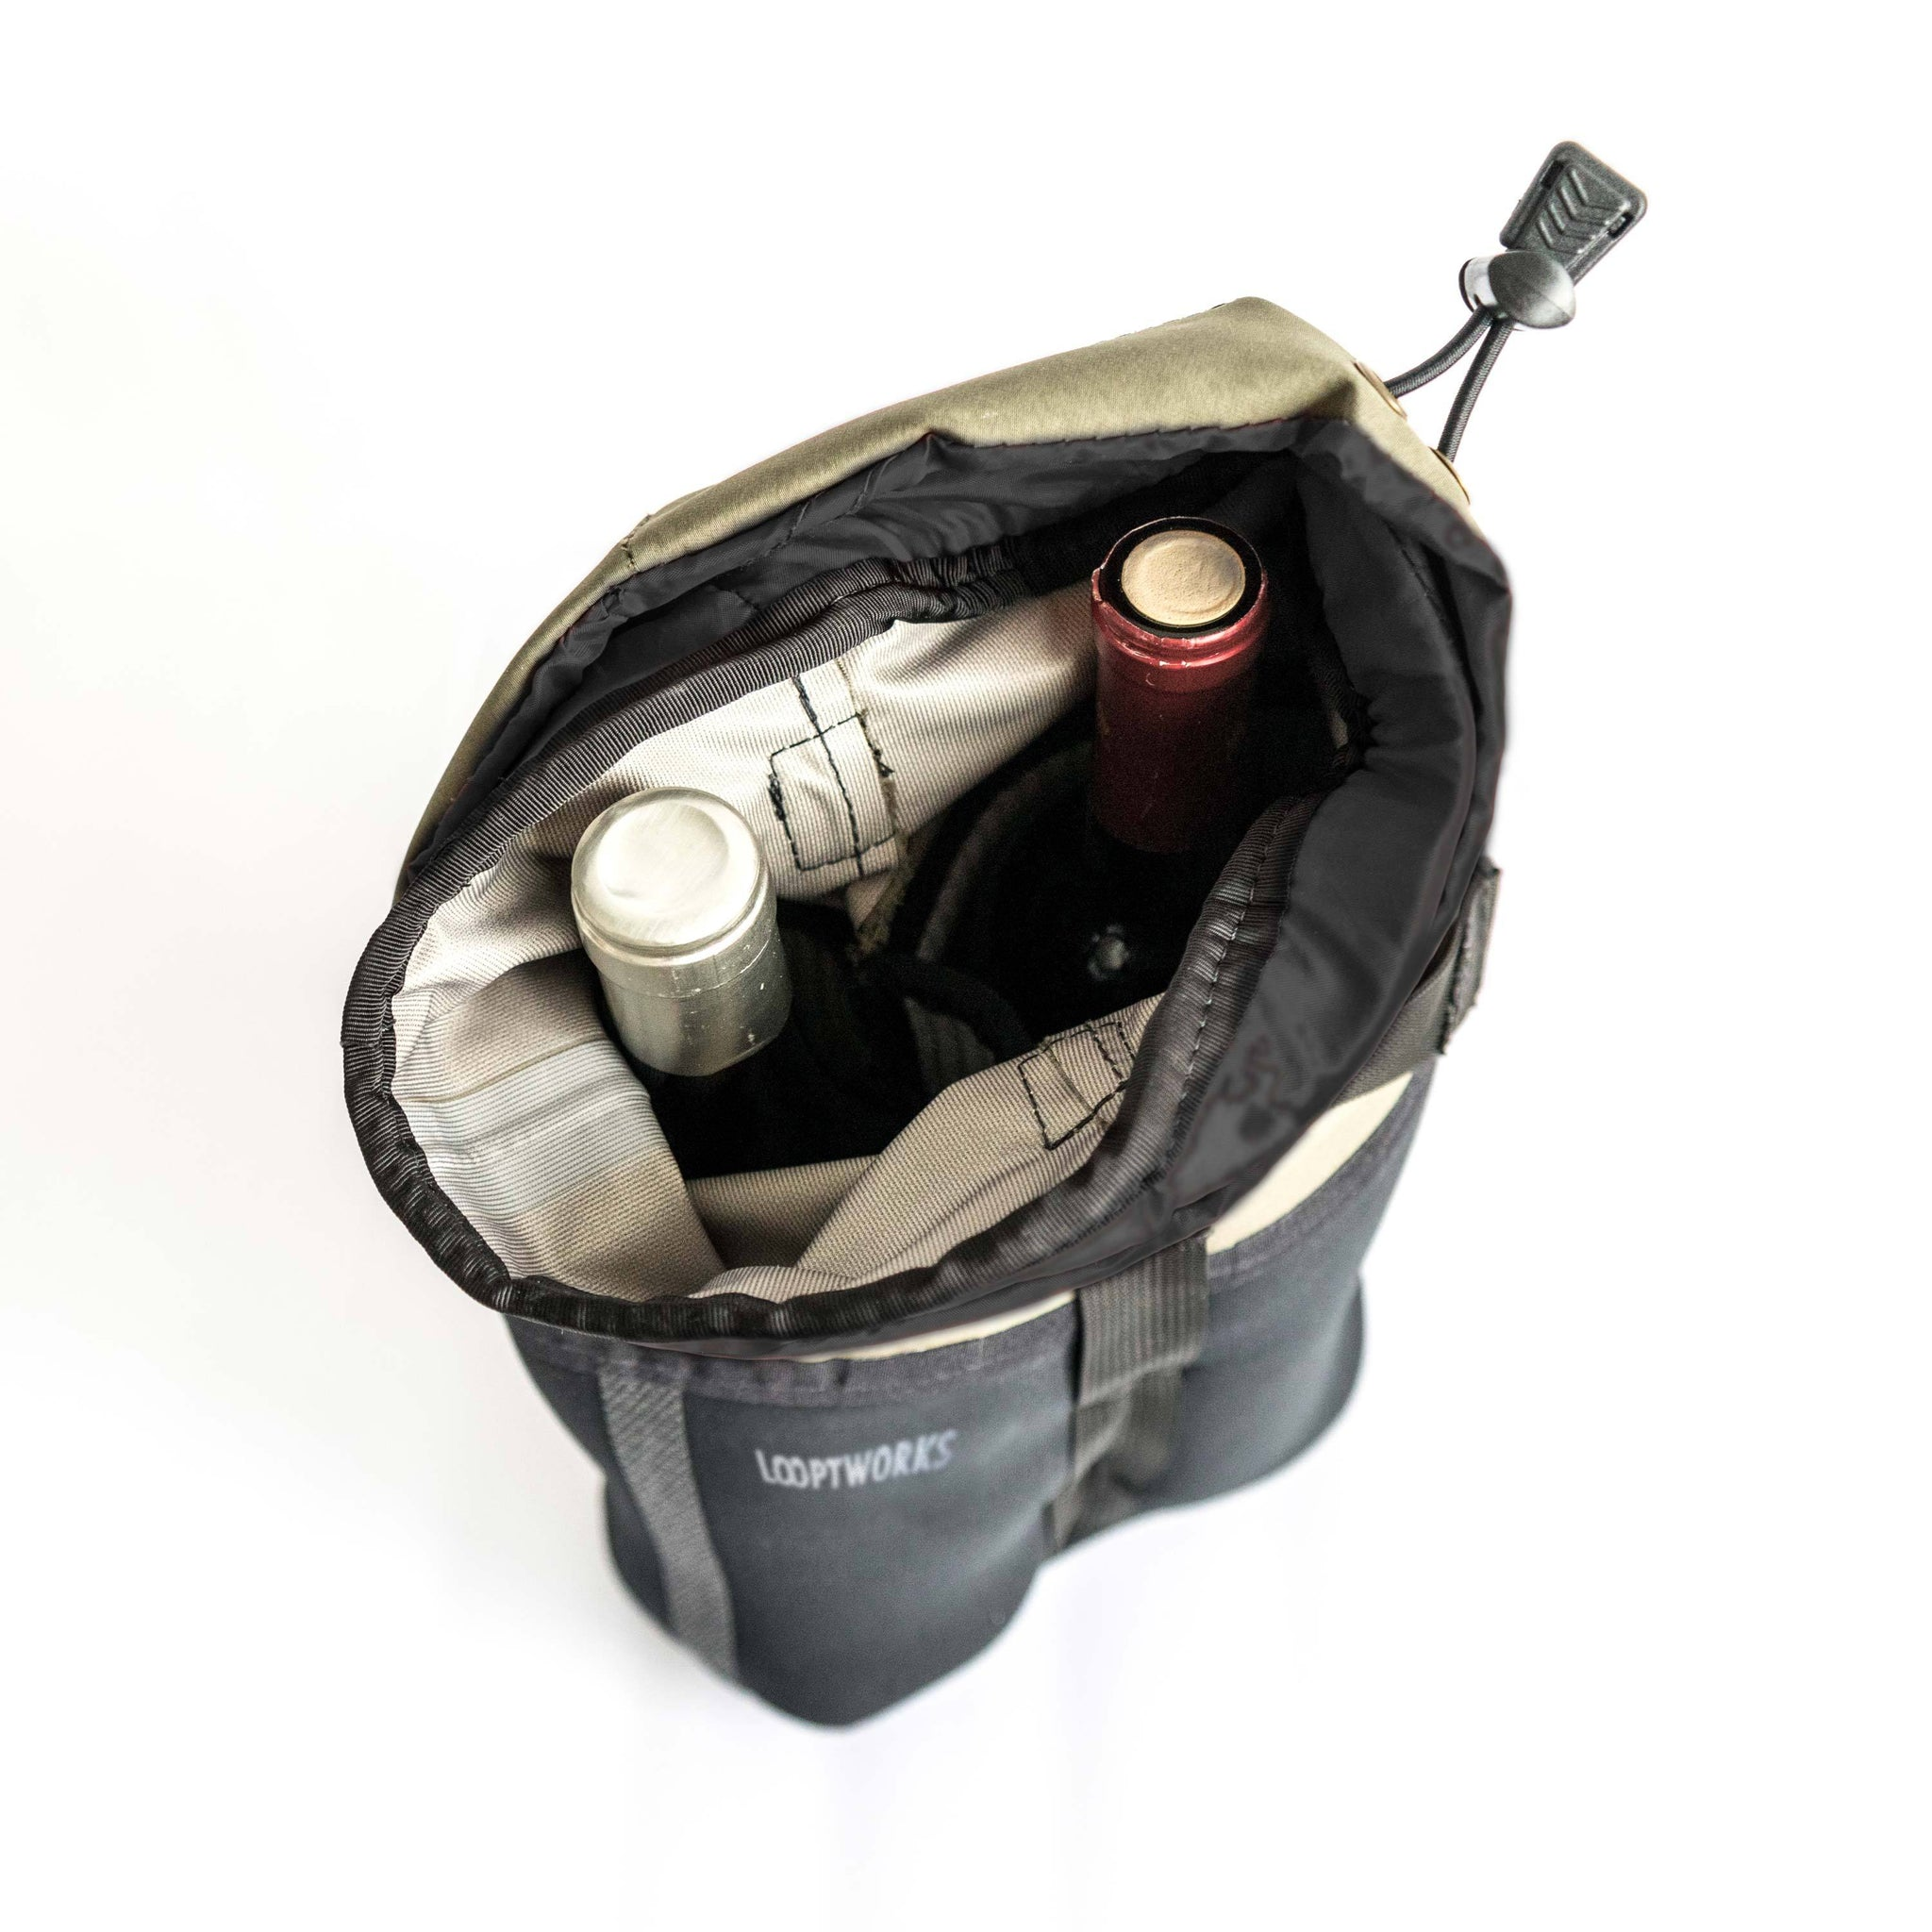 A look inside our dual wine carrier - twice the adventure. Upcycled from Patagonia fishing waders